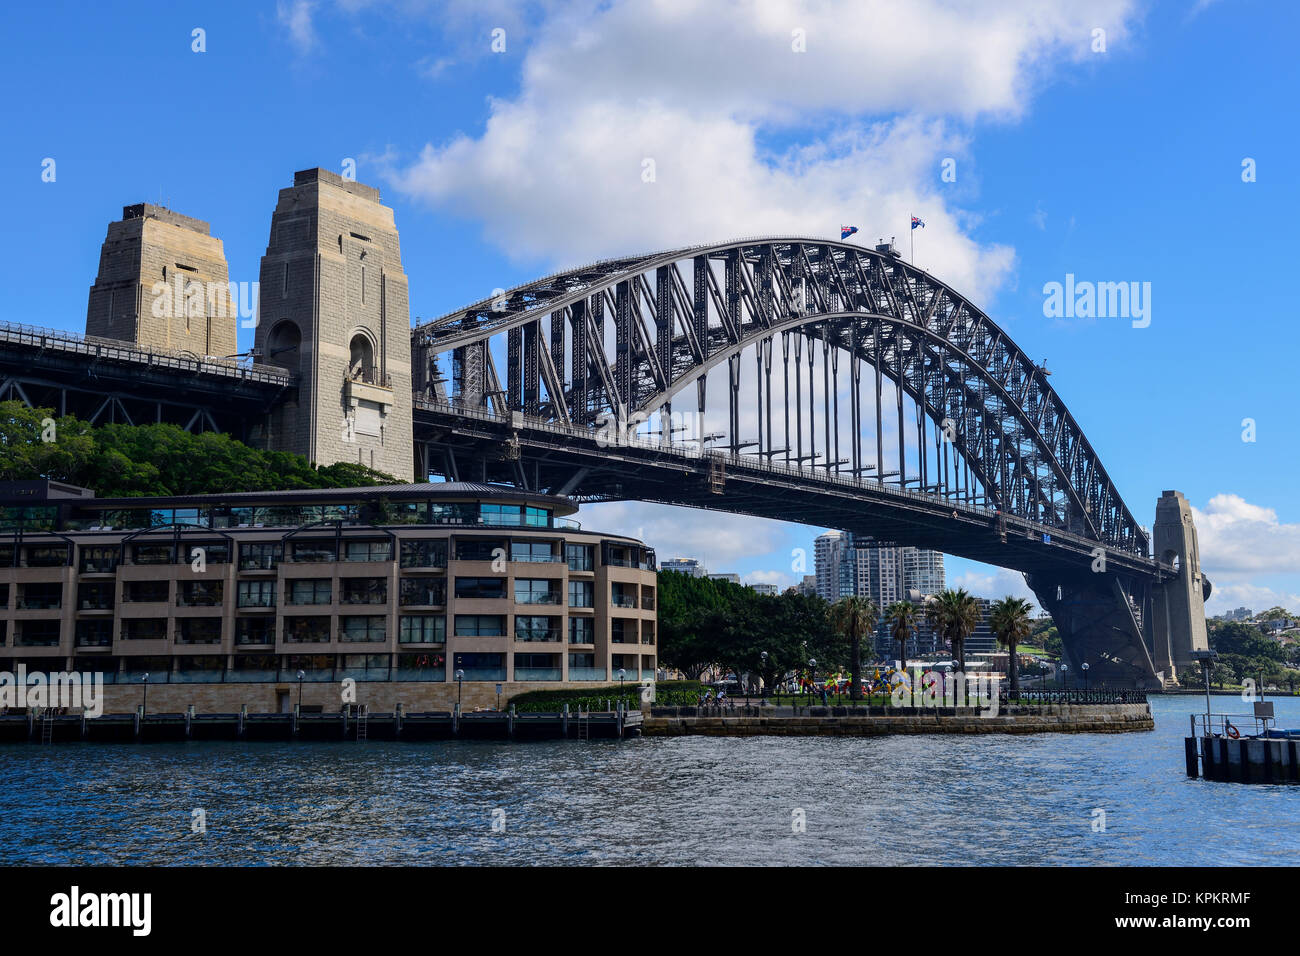 Sydney Harbour Bridge looking across Campbell's Cove, The Rocks, Sydney, New South Wales, Australia - Stock Image